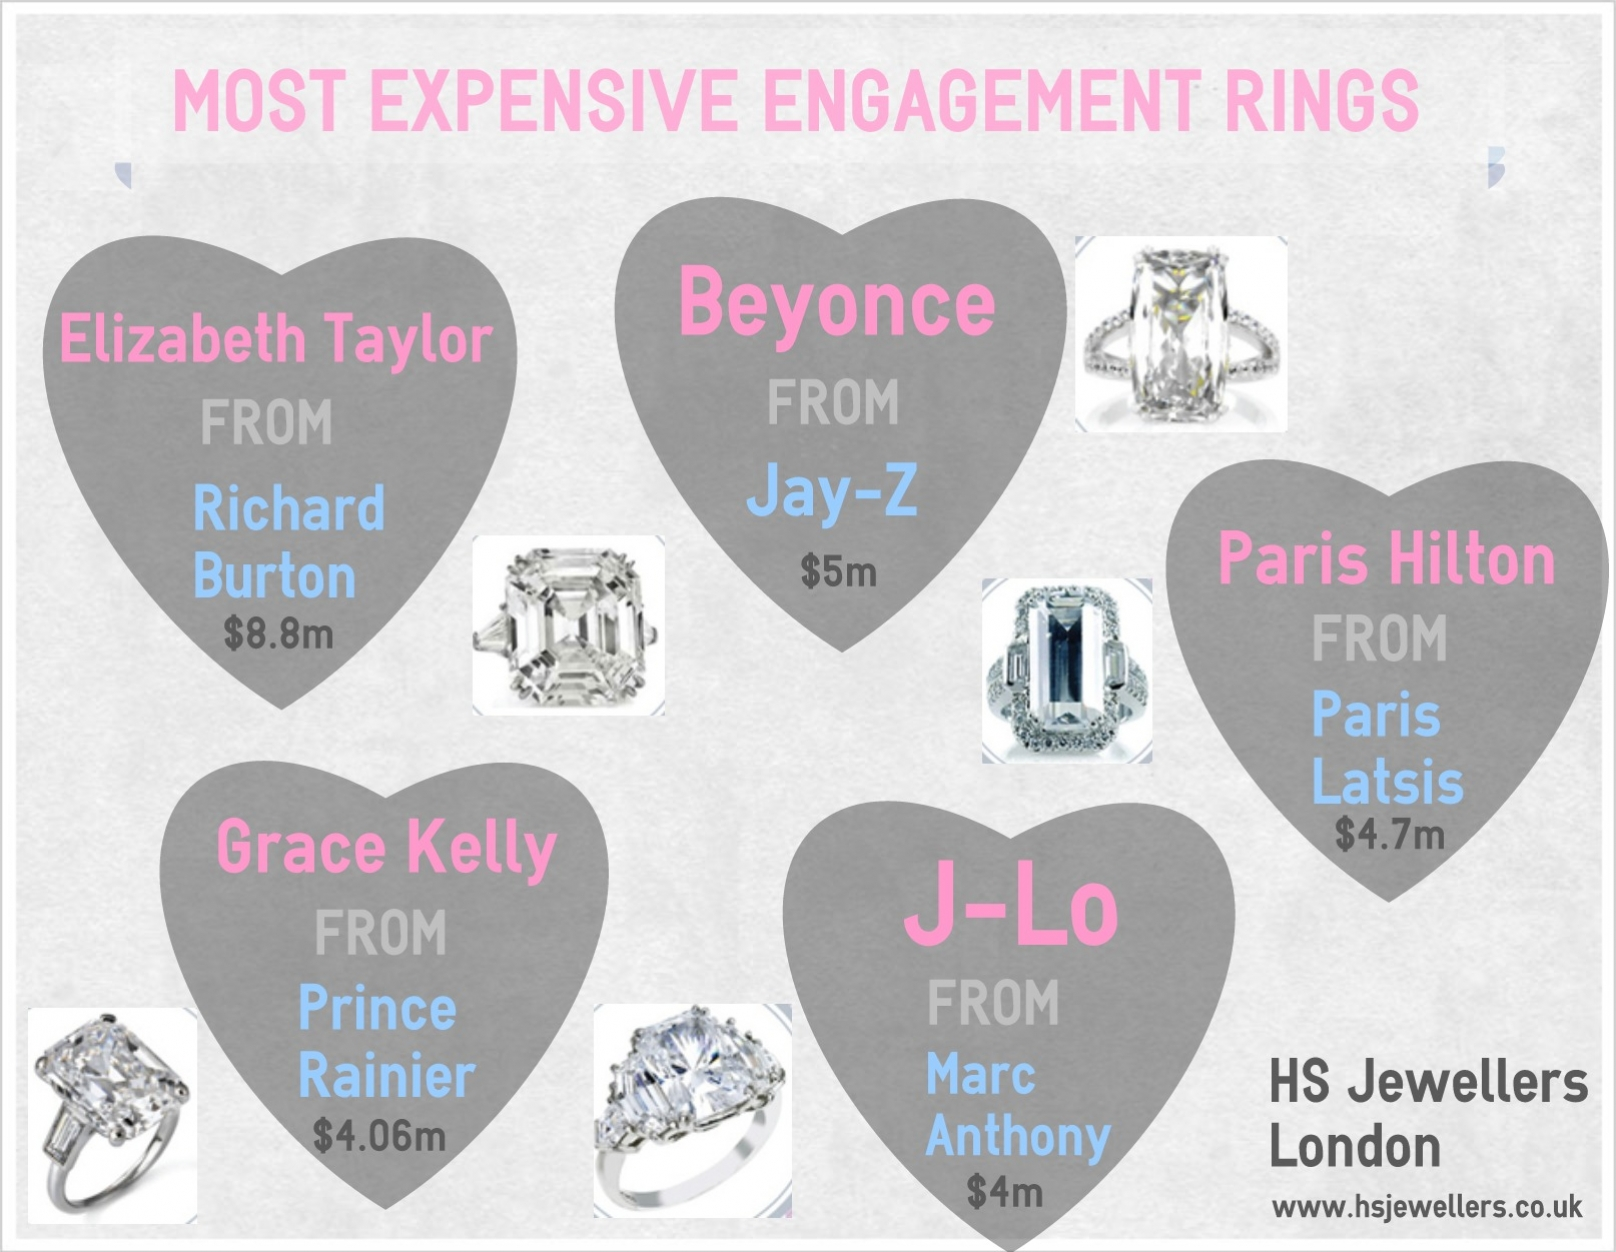 most expensive engagement rings visually - Wedding Rings Expensive